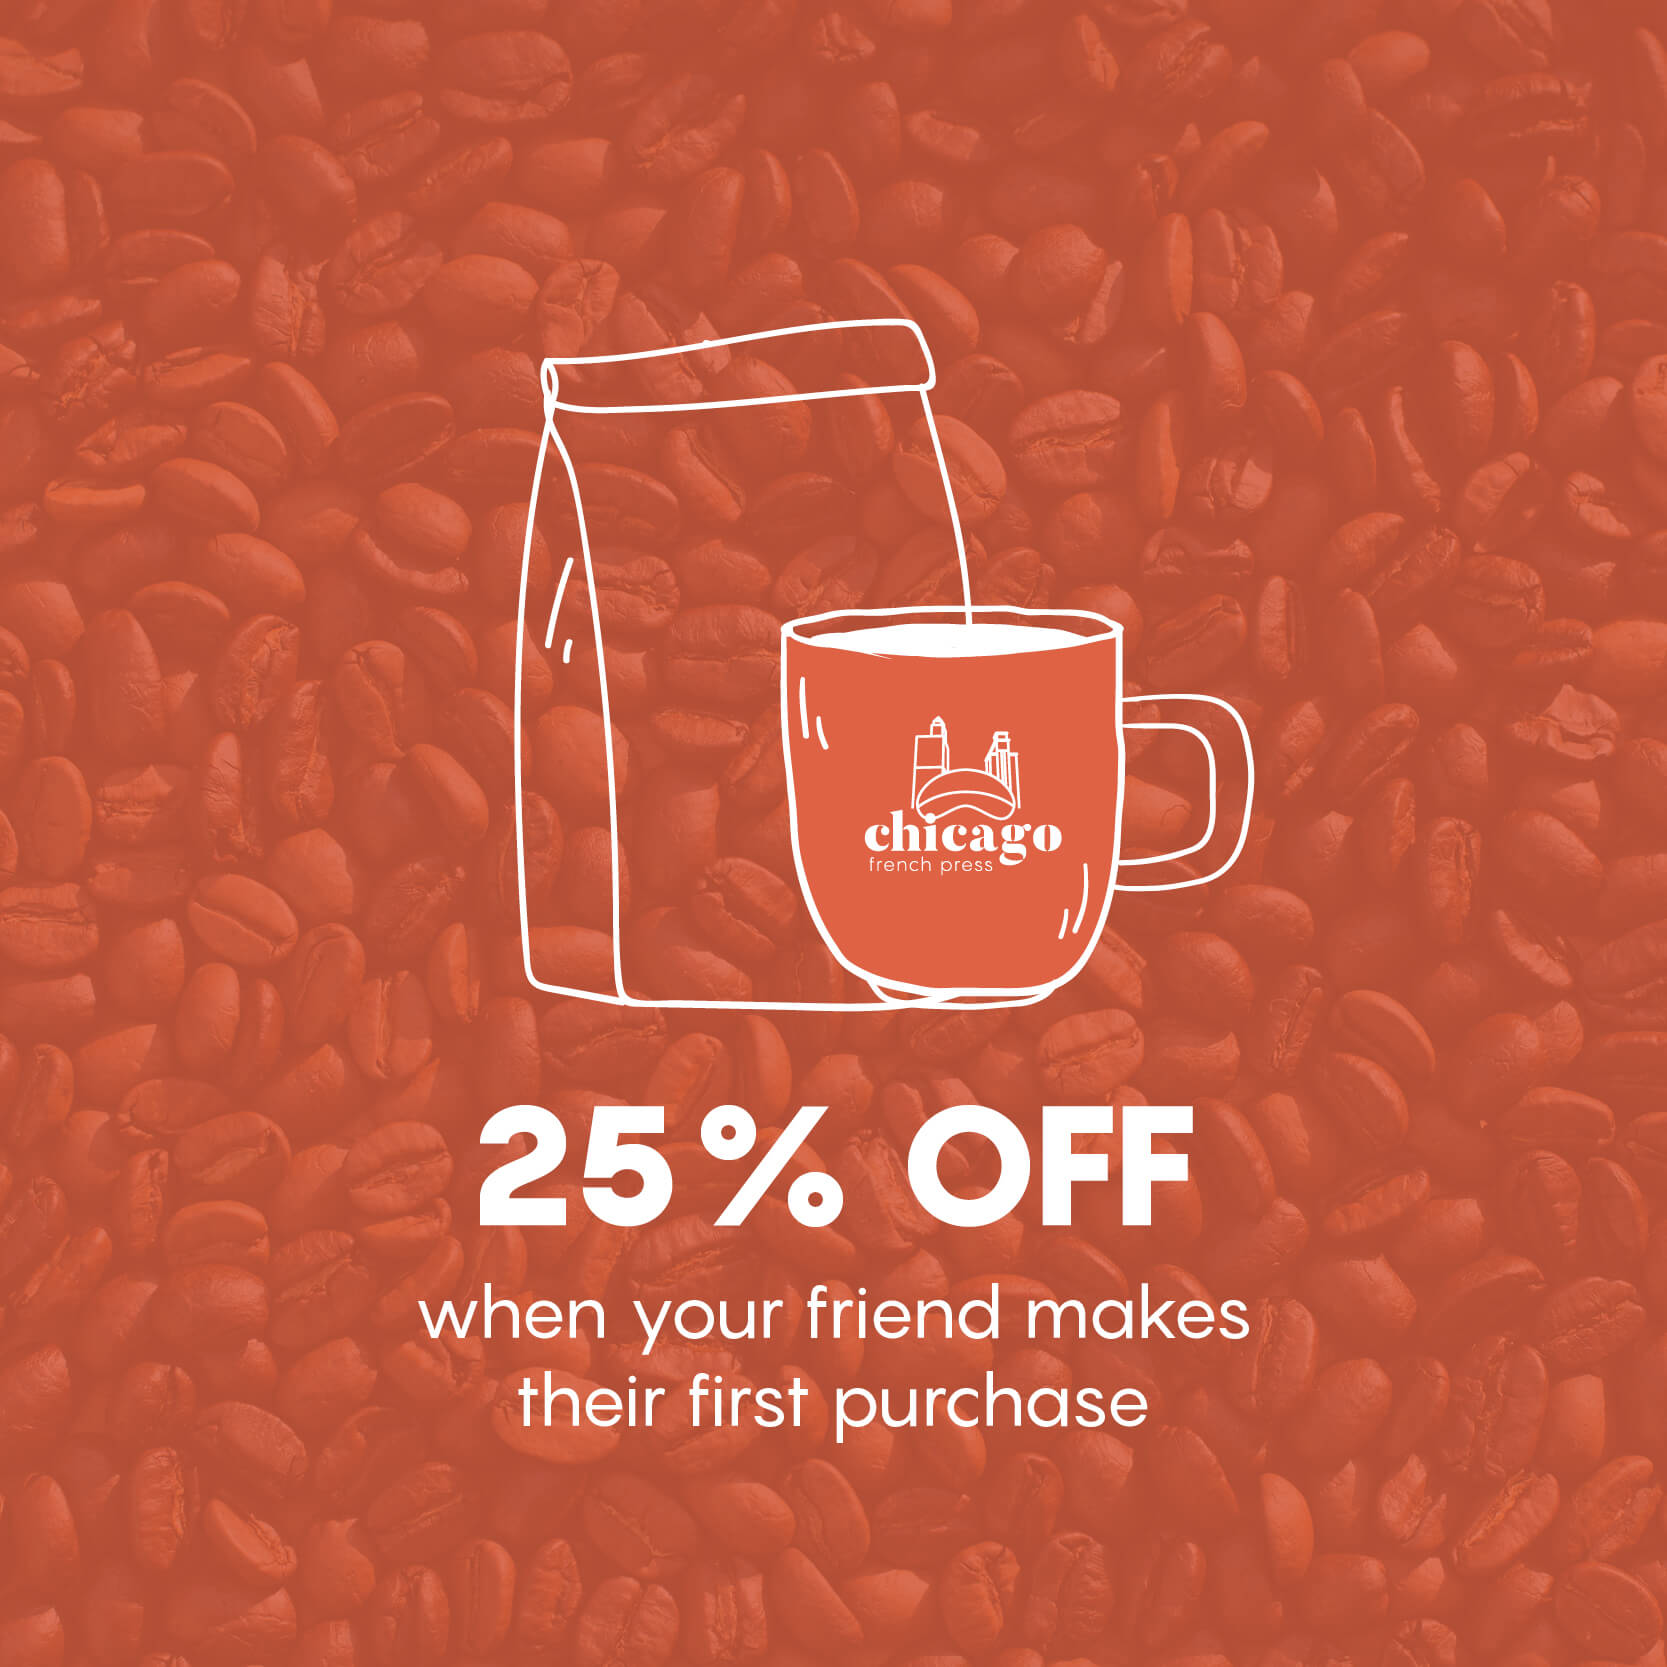 25% off when your friend makes their first purchase